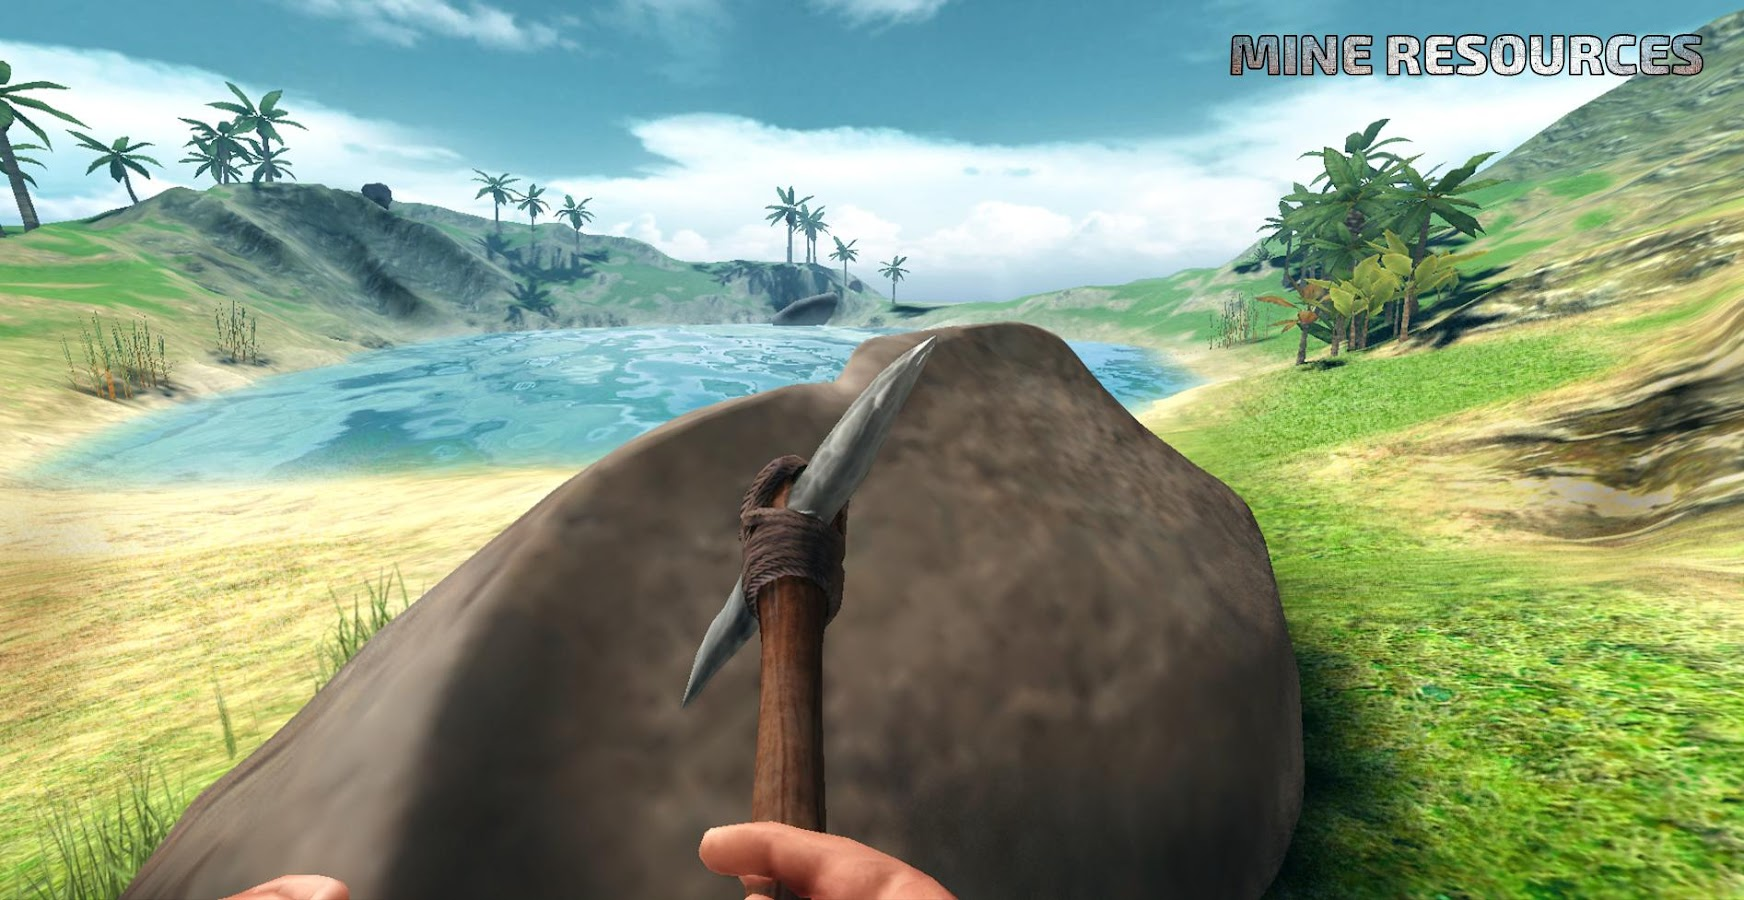 Home Builder Software Survival Island Evolve Pro Android Apps On Google Play